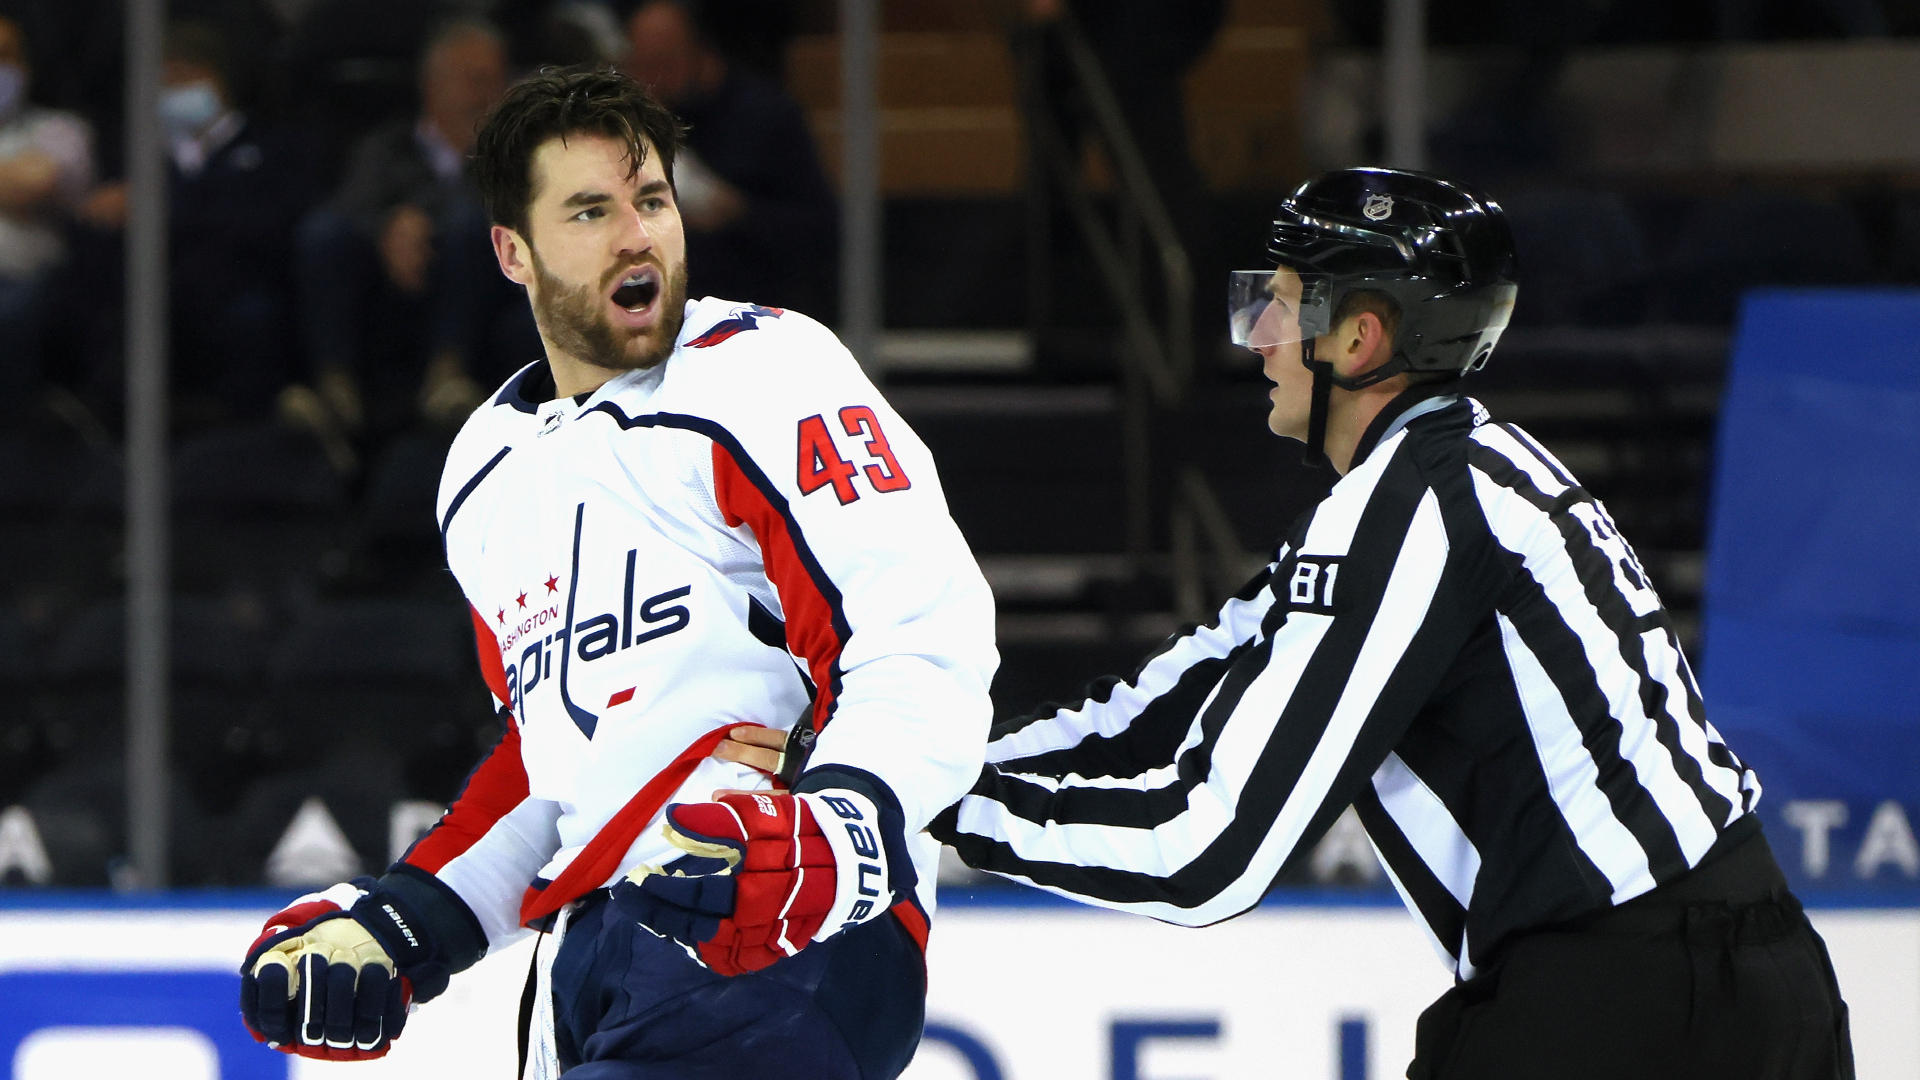 Capitals' Tom Wilson hits Pavel Buchnevich in the head and slams Artemi Panarin on the ice